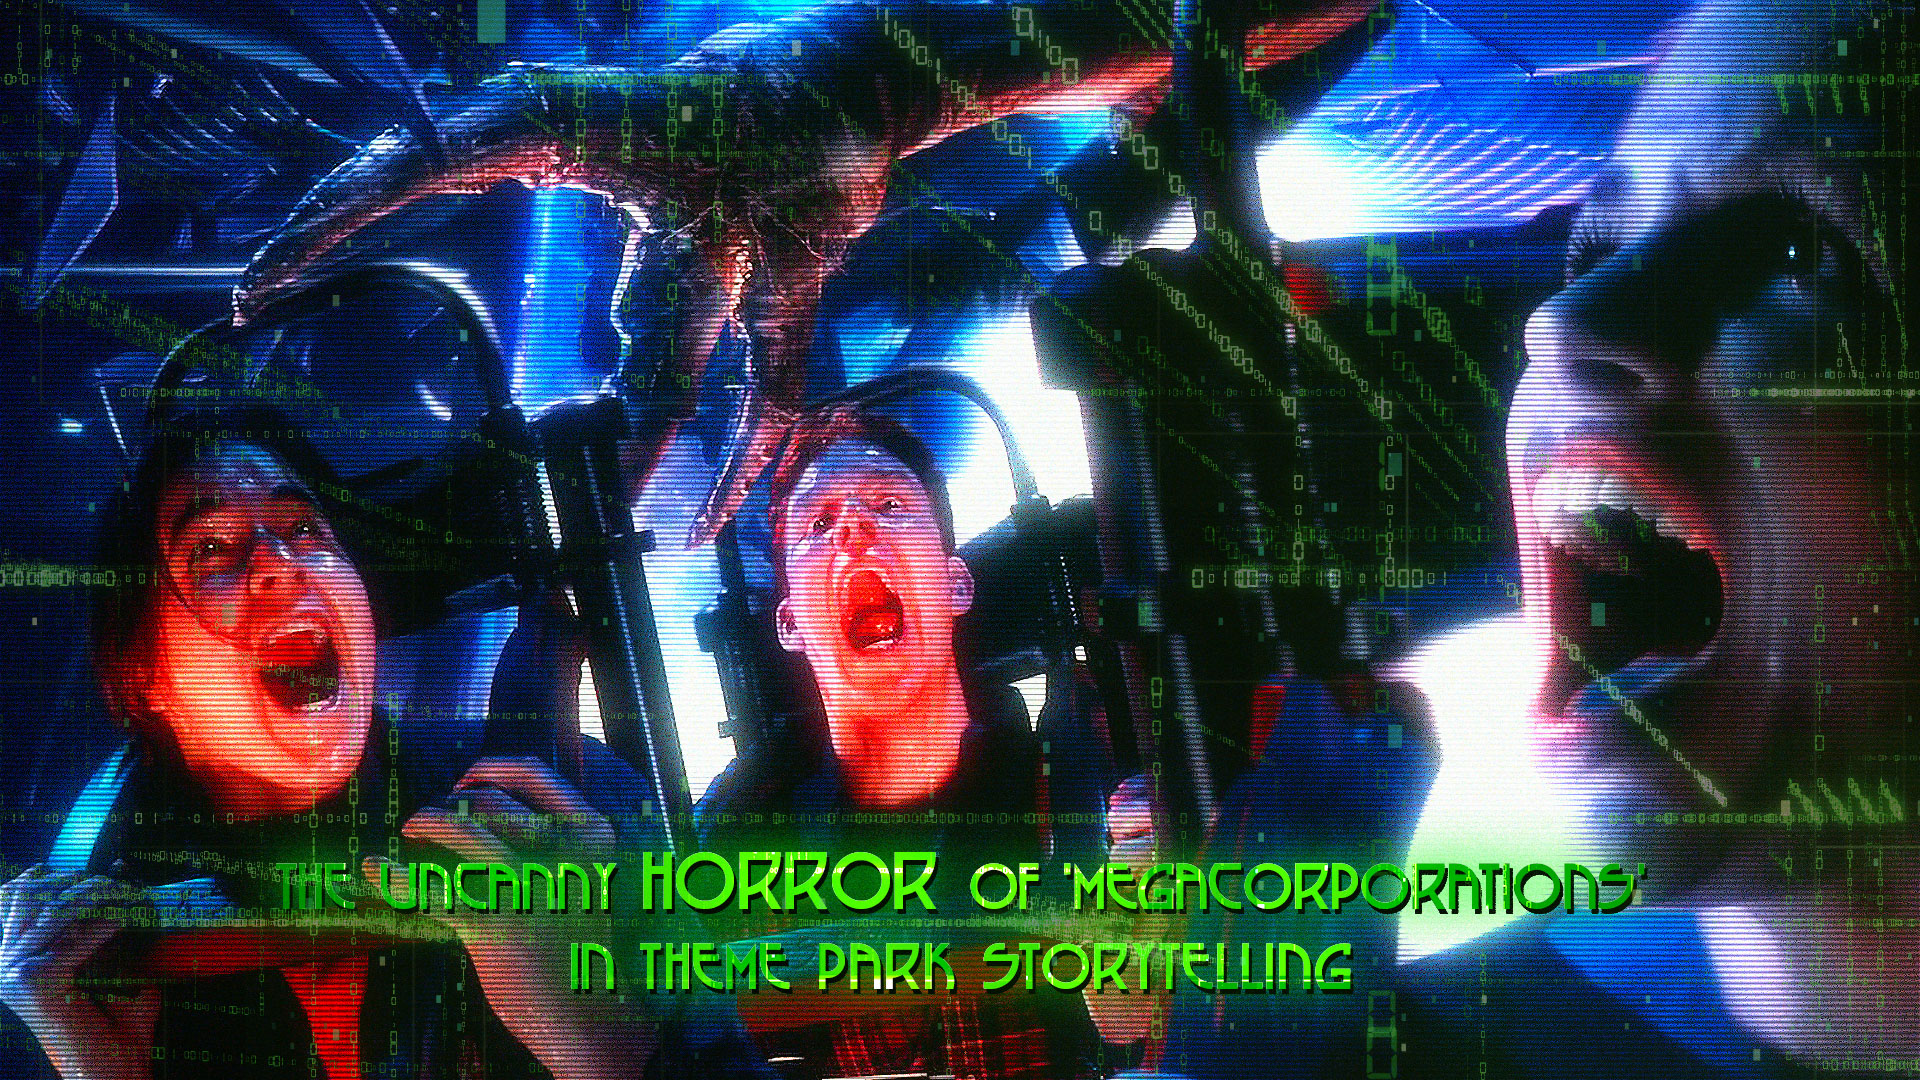 HORRORWOOD™ Presents... 'The Uncanny Horror of 'Megacorporations' in Theme Park Storytelling'